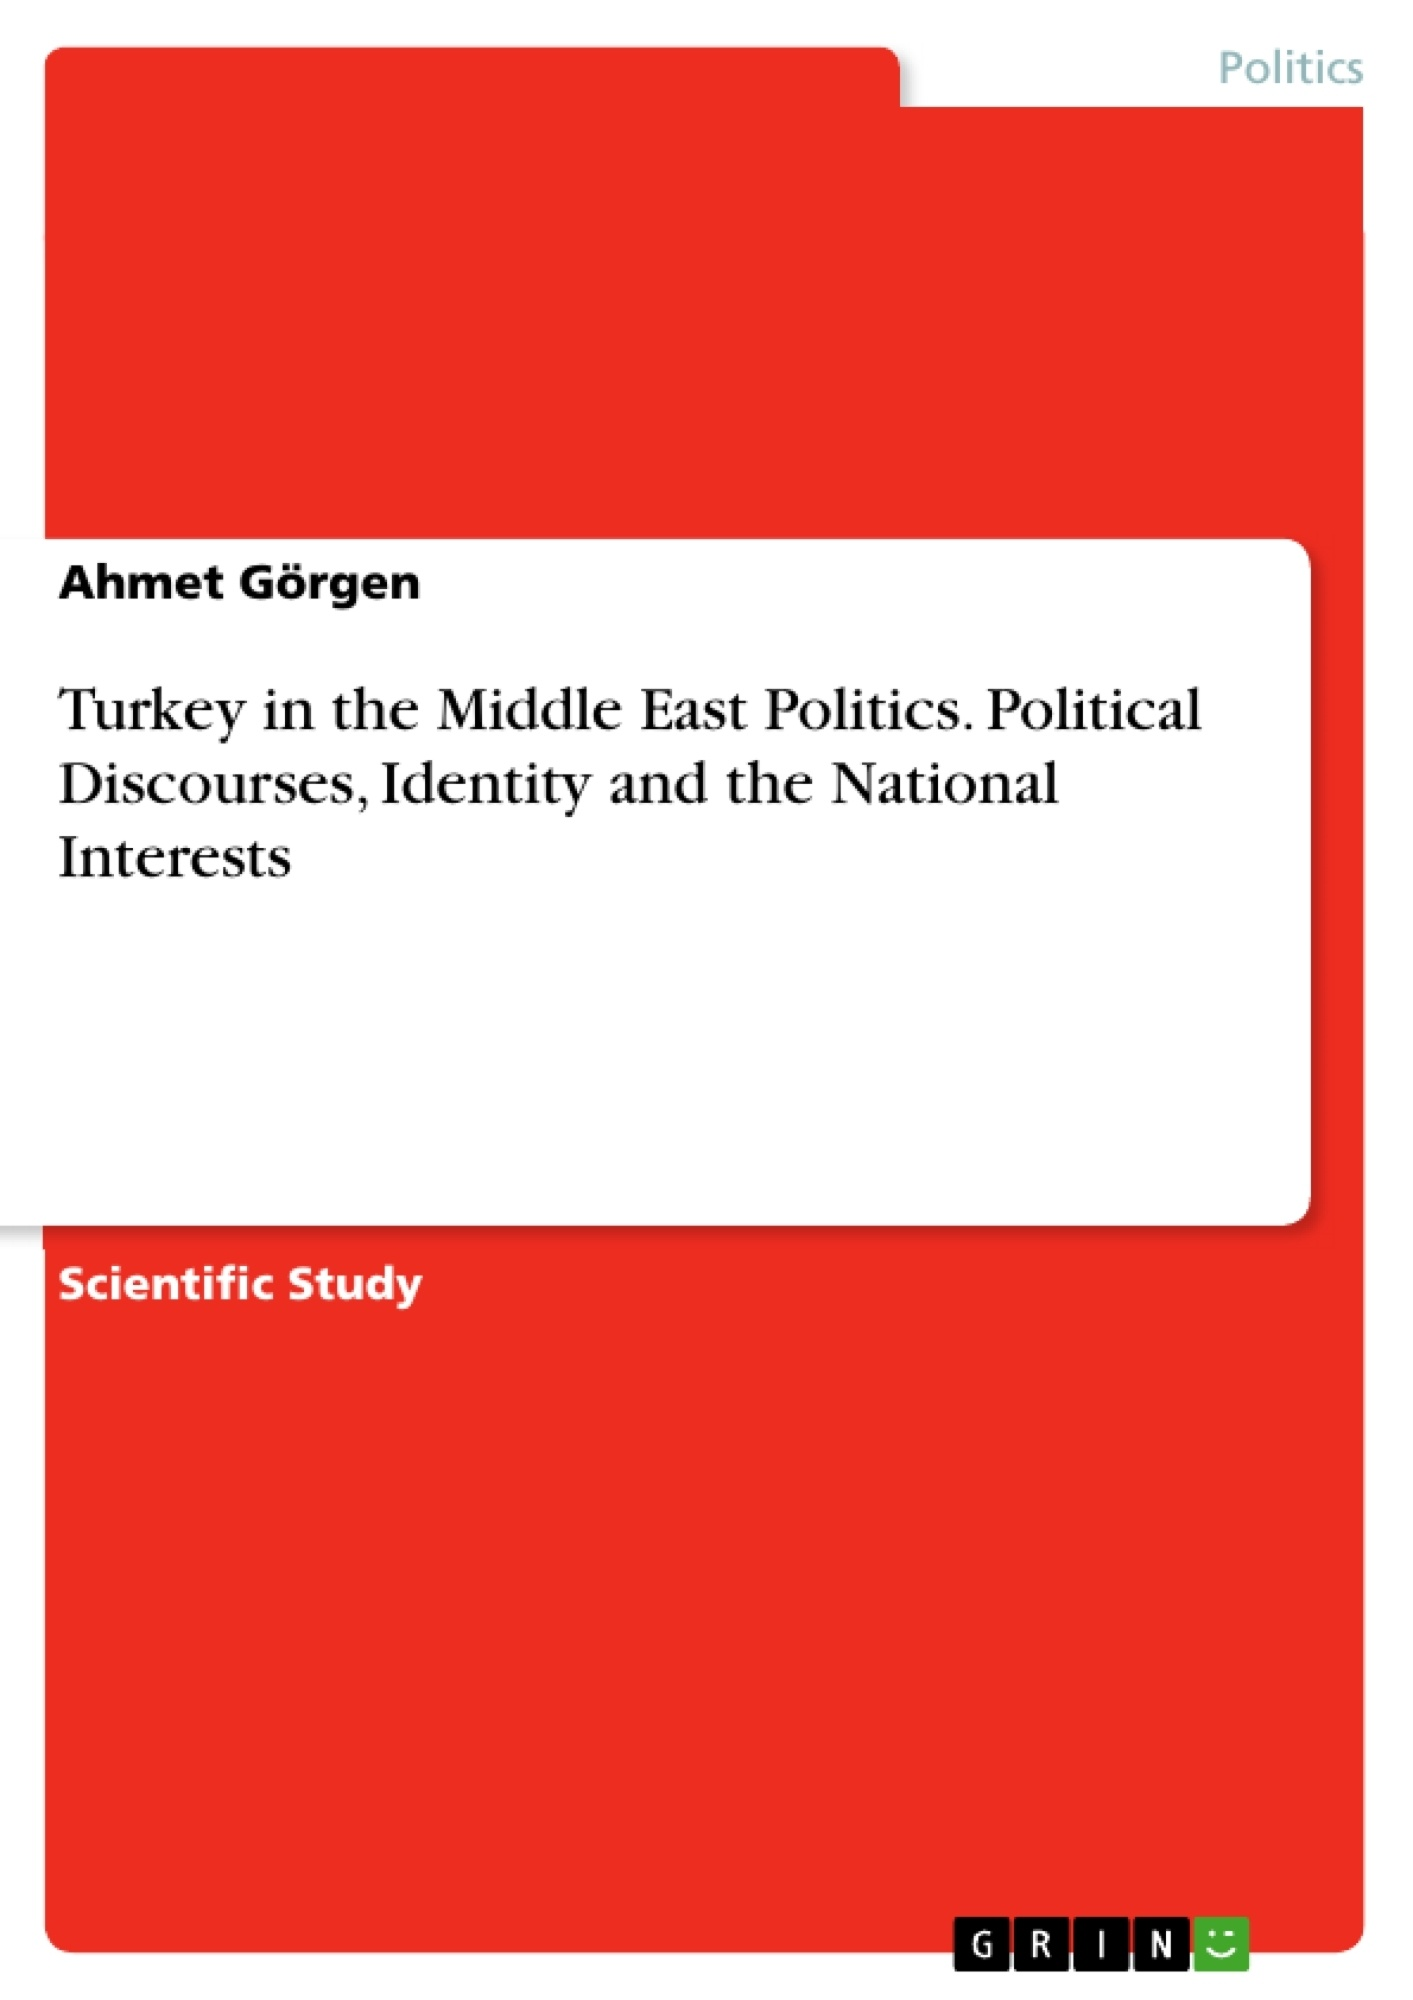 Title: Turkey in the Middle East Politics. Political Discourses, Identity and the National Interests